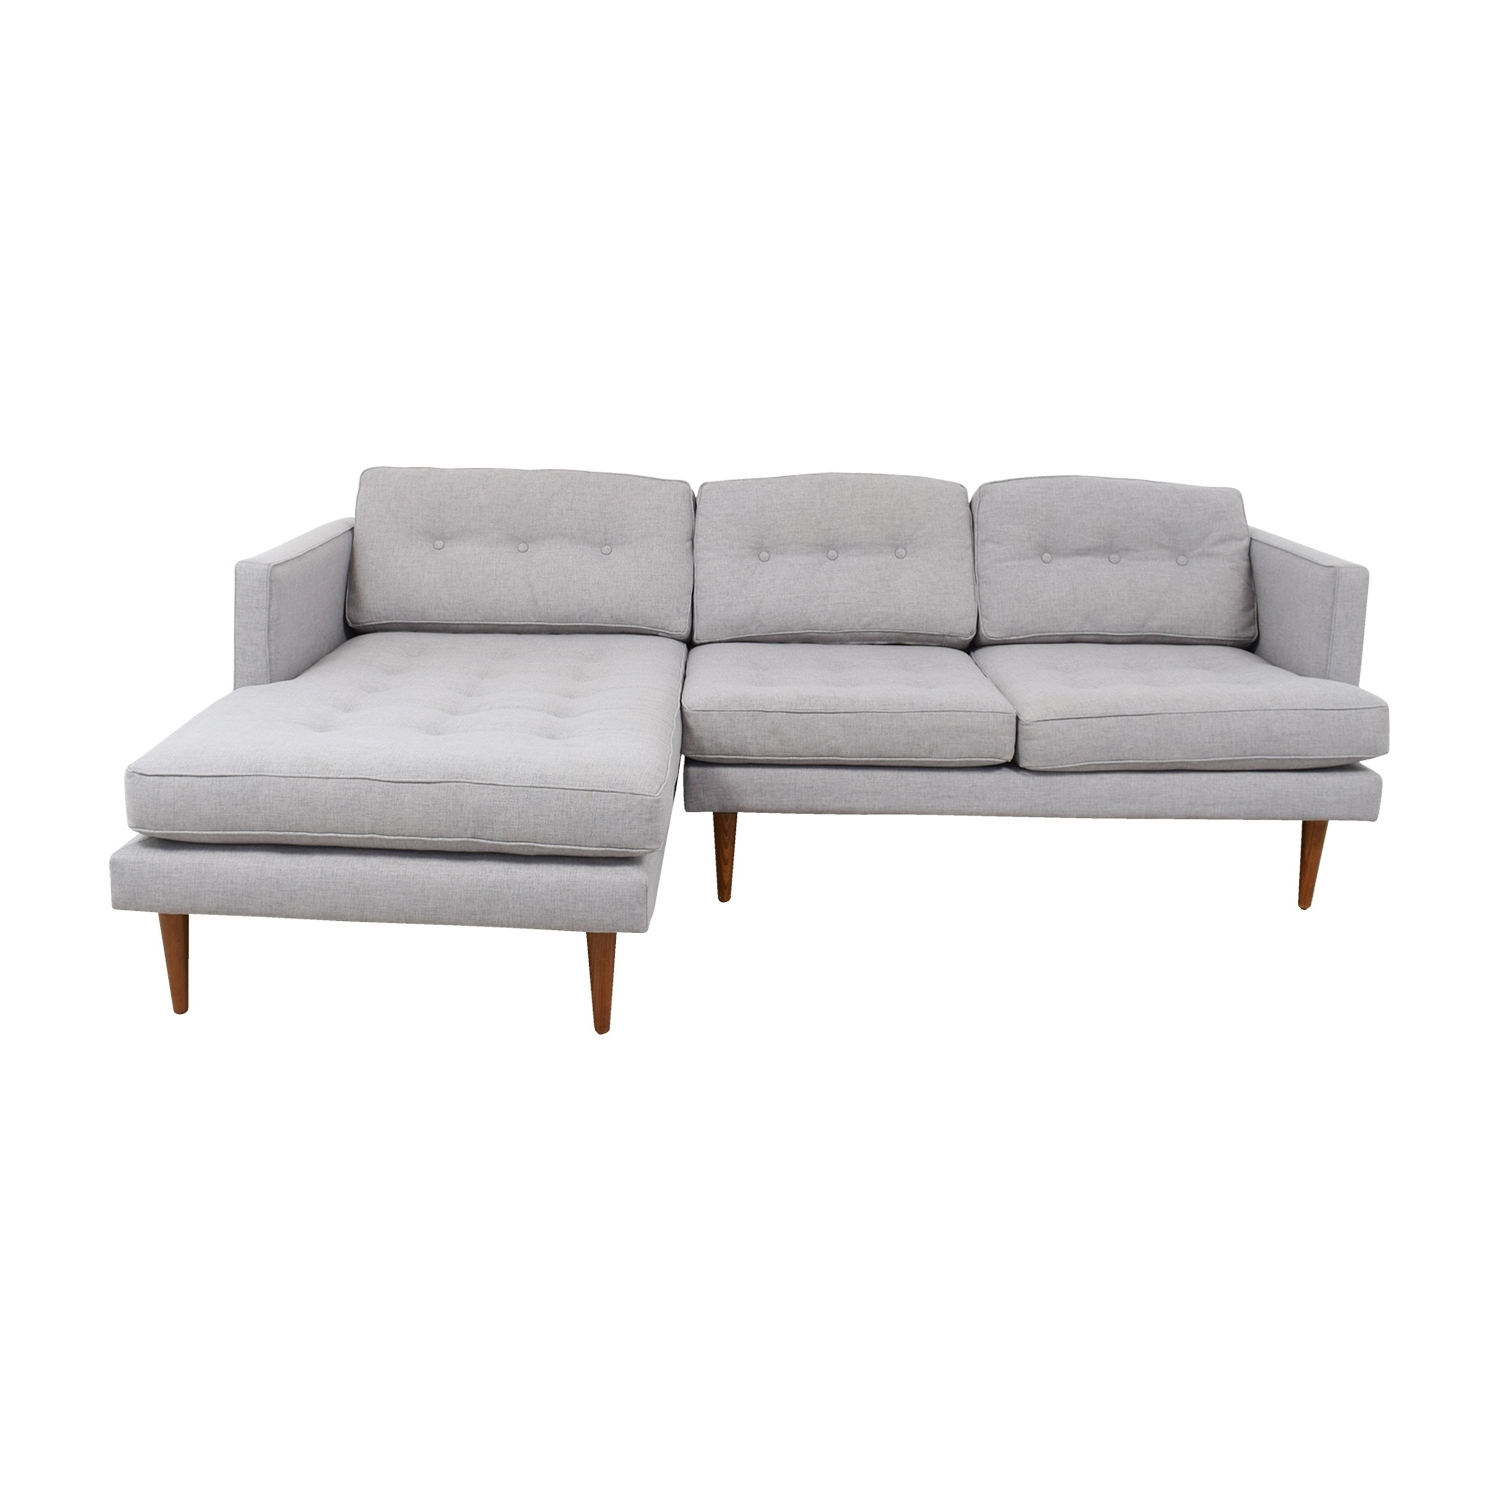 [%64% Off – West Elm West Elm Grey Tufted Chaise Sectional / Sofas With Newest Tufted Sectionals Sofa With Chaise|Tufted Sectionals Sofa With Chaise Inside Well Liked 64% Off – West Elm West Elm Grey Tufted Chaise Sectional / Sofas|Preferred Tufted Sectionals Sofa With Chaise With 64% Off – West Elm West Elm Grey Tufted Chaise Sectional / Sofas|Well Liked 64% Off – West Elm West Elm Grey Tufted Chaise Sectional / Sofas With Tufted Sectionals Sofa With Chaise%] (View 3 of 15)